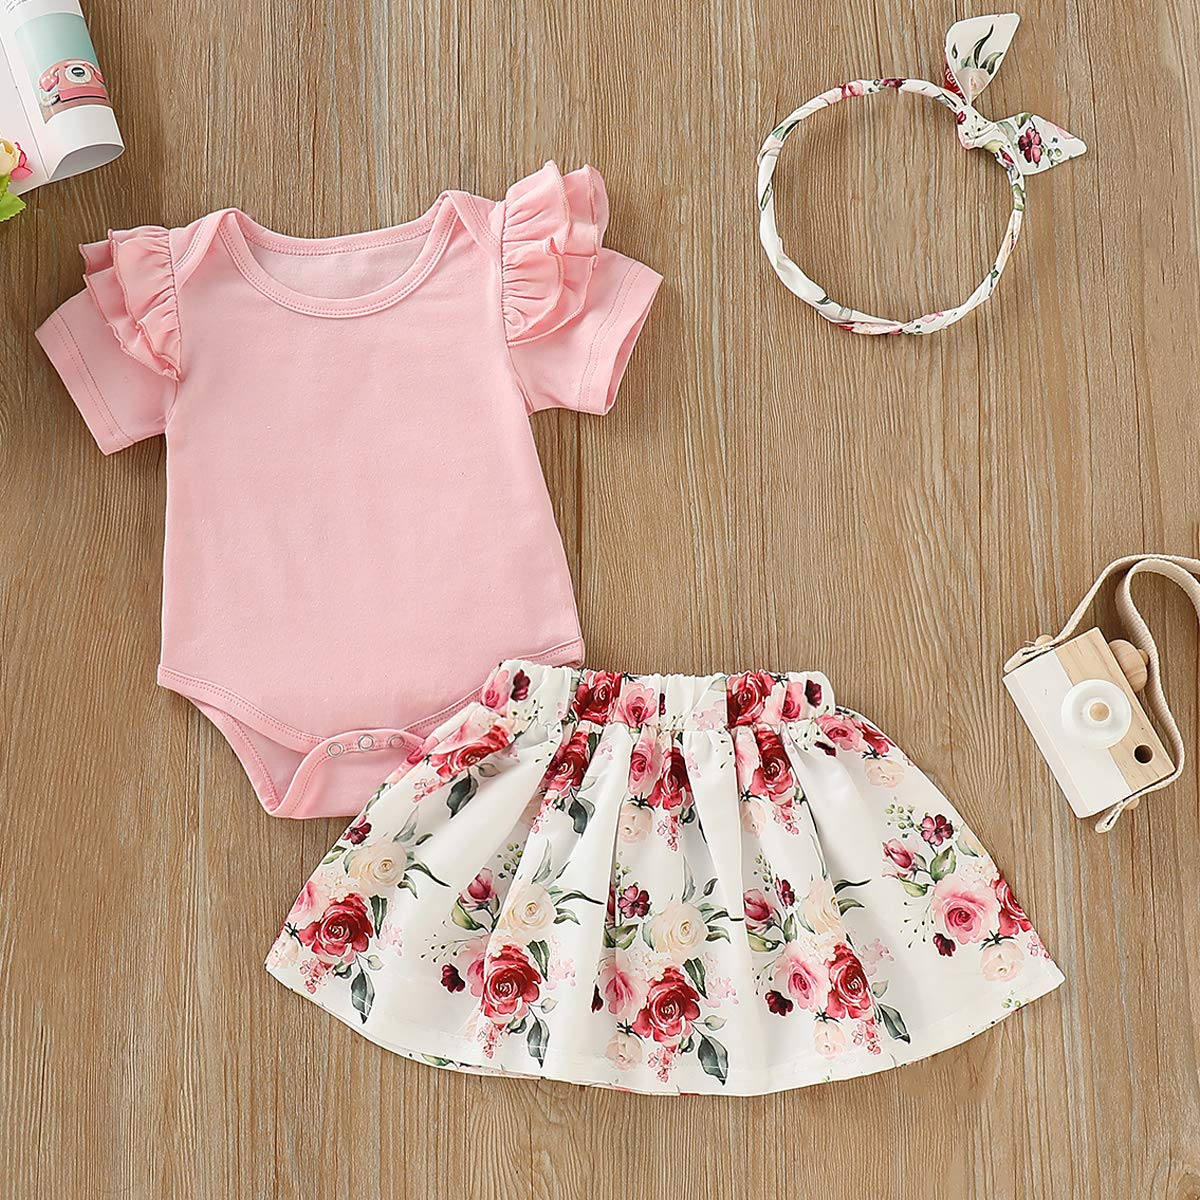 Infant Toddler Baby Girl Fall Clothes Ruffle Short Sleeve Romper+Floral Tutu Skirt+Headband 3Pcs Winter Outfits